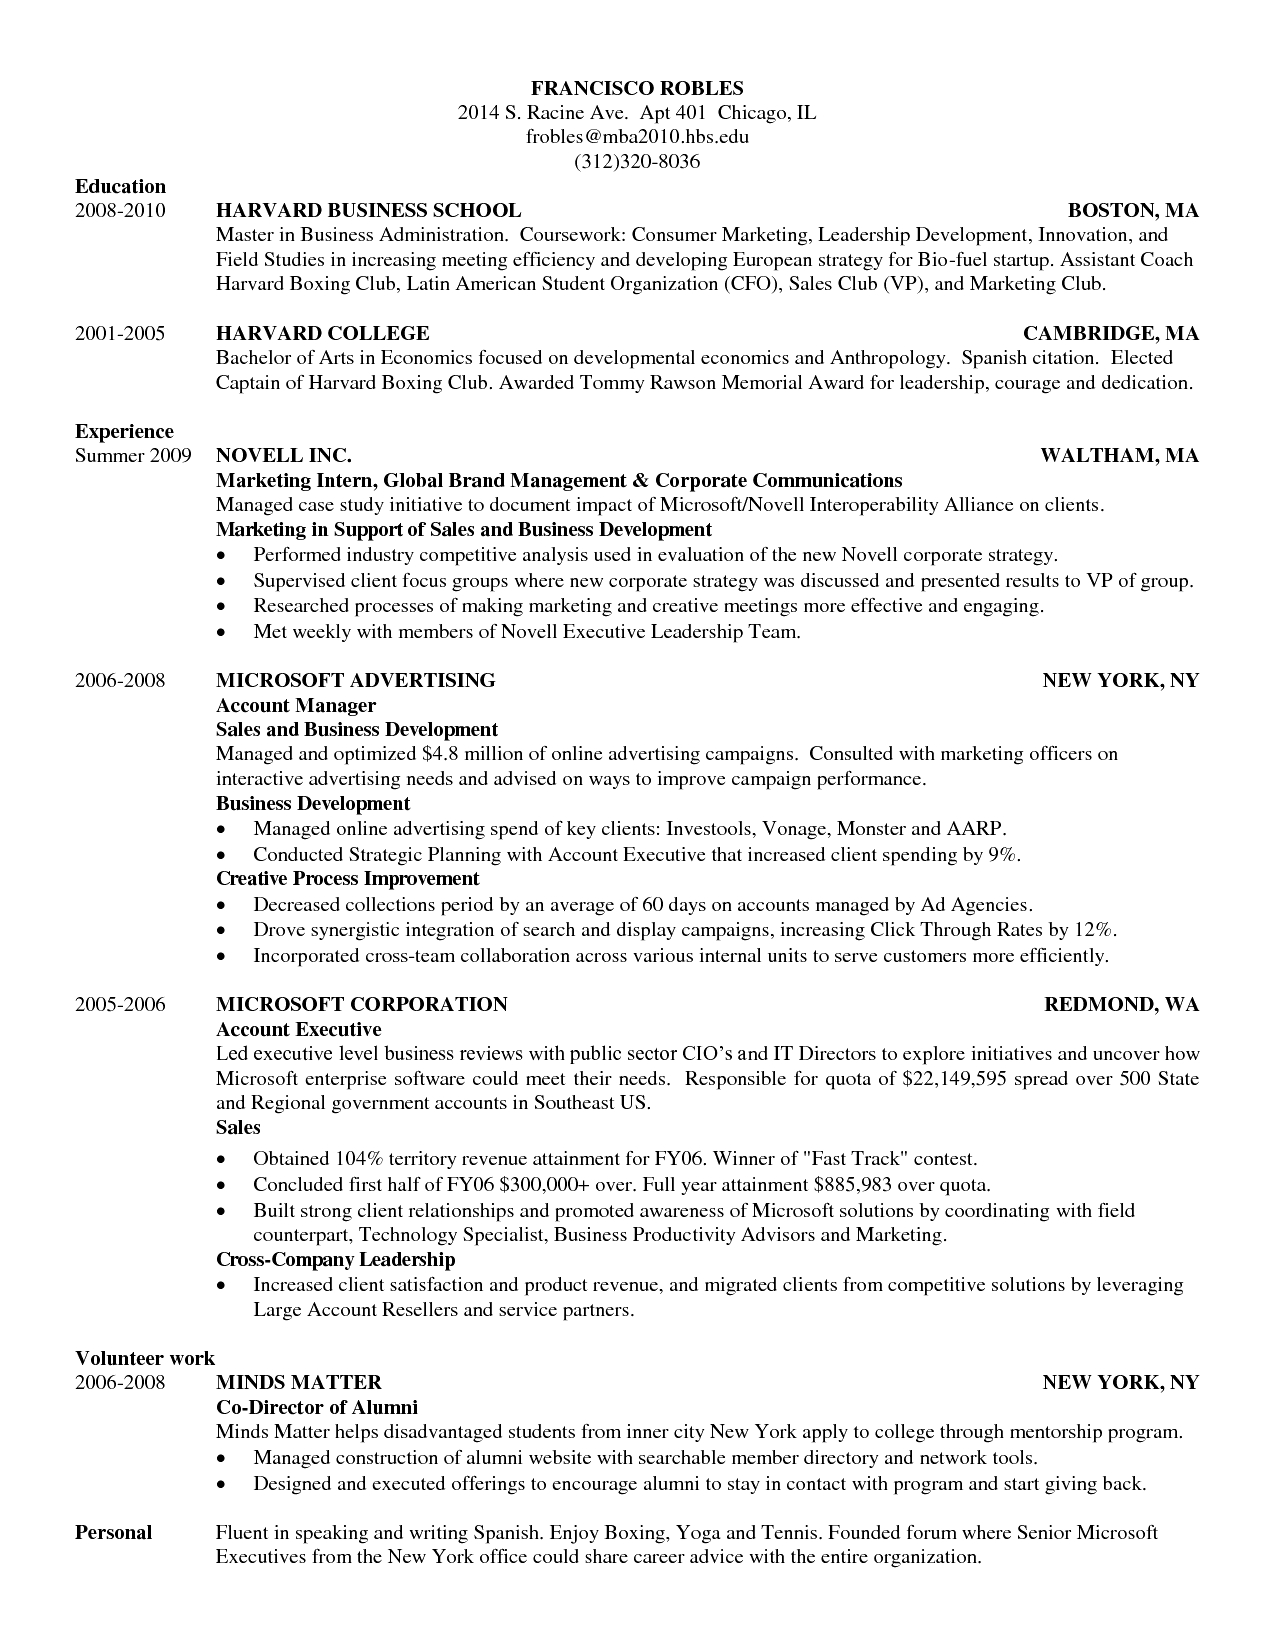 13 mccombs cover letter template inspiration